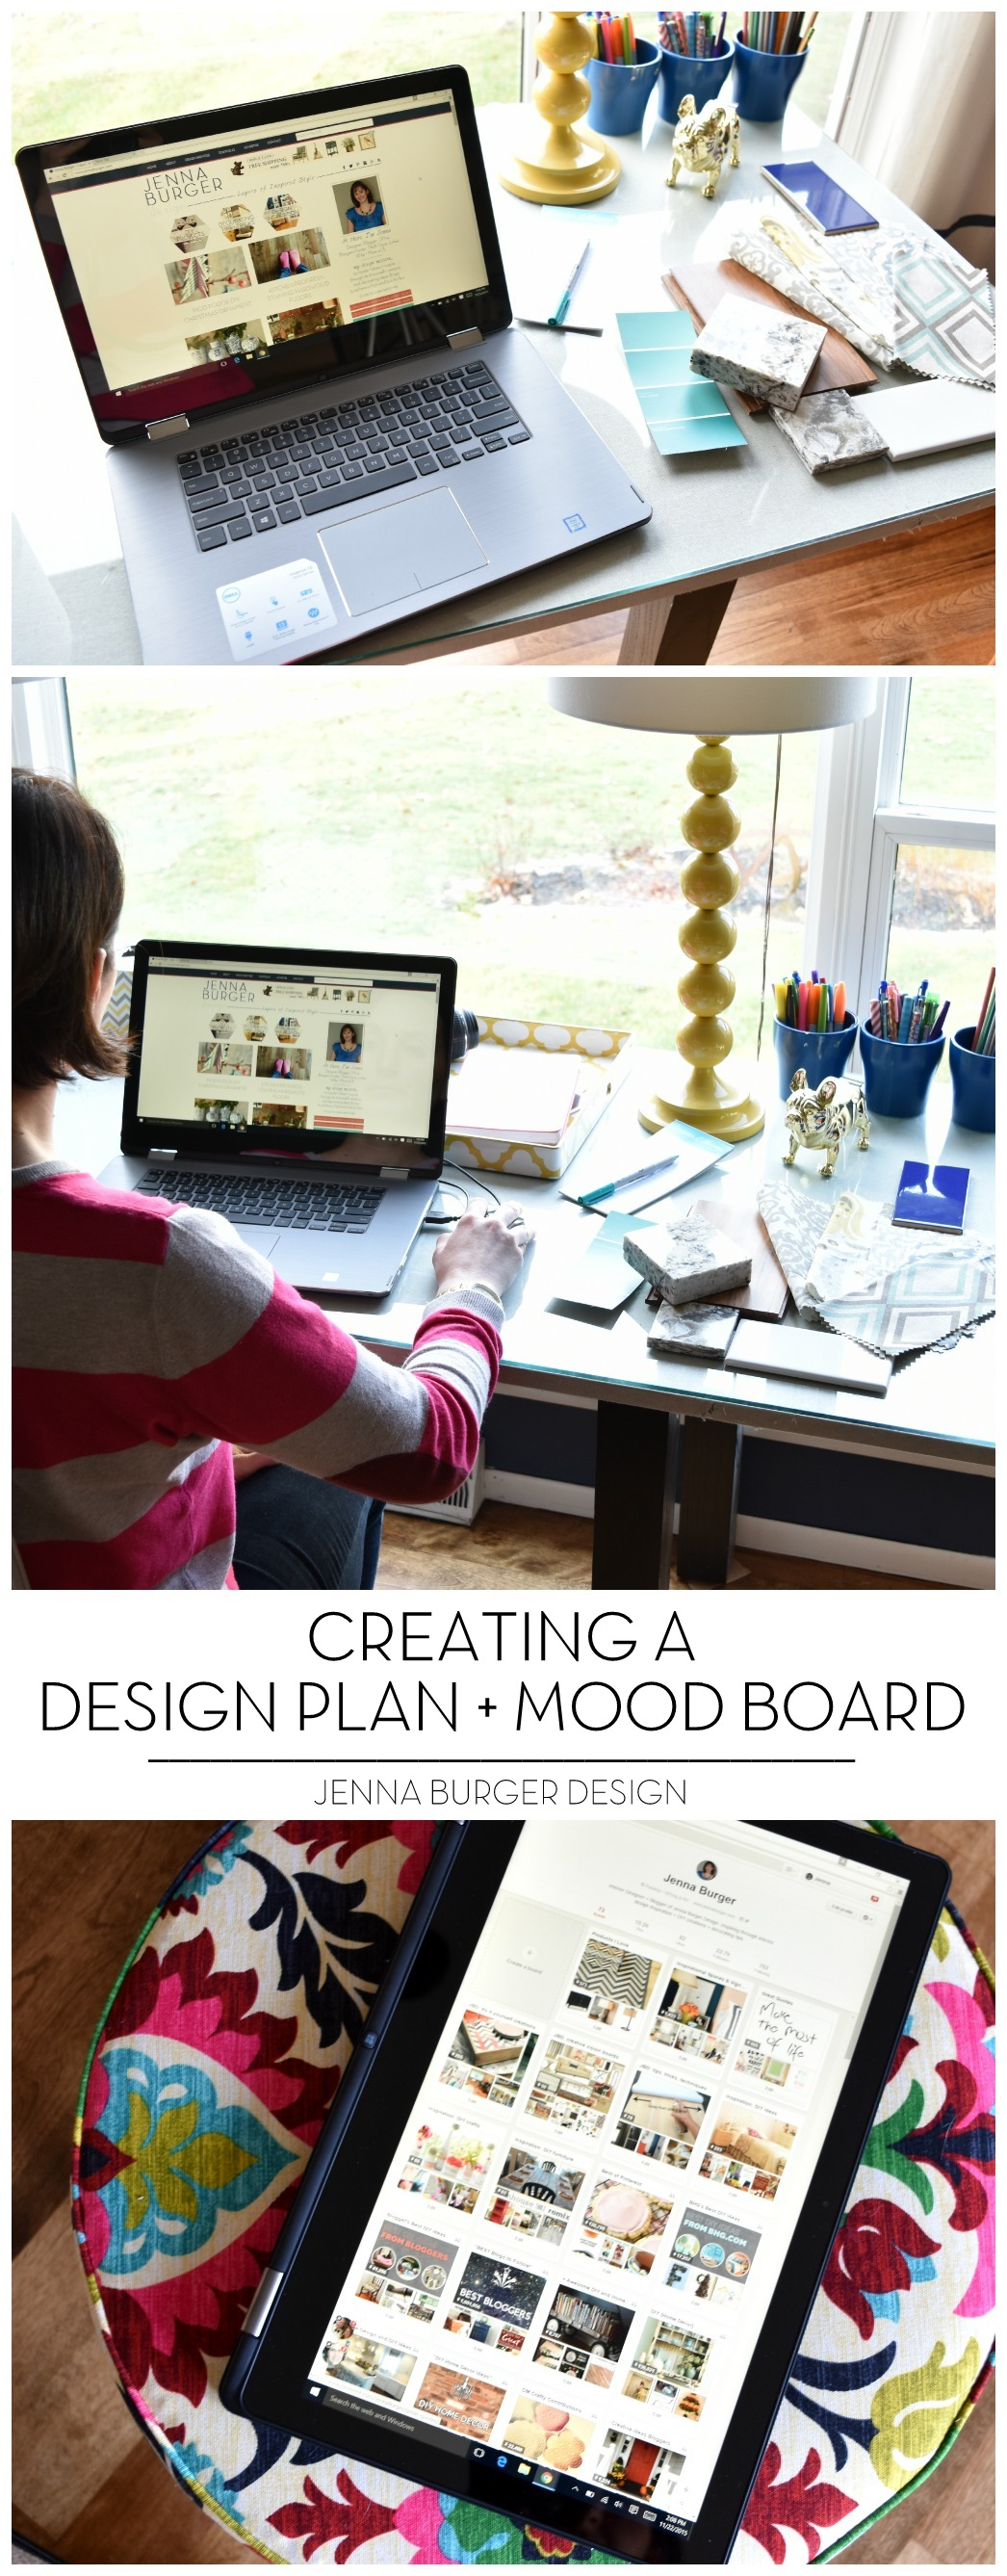 Creating a Design Plan + Mood Board